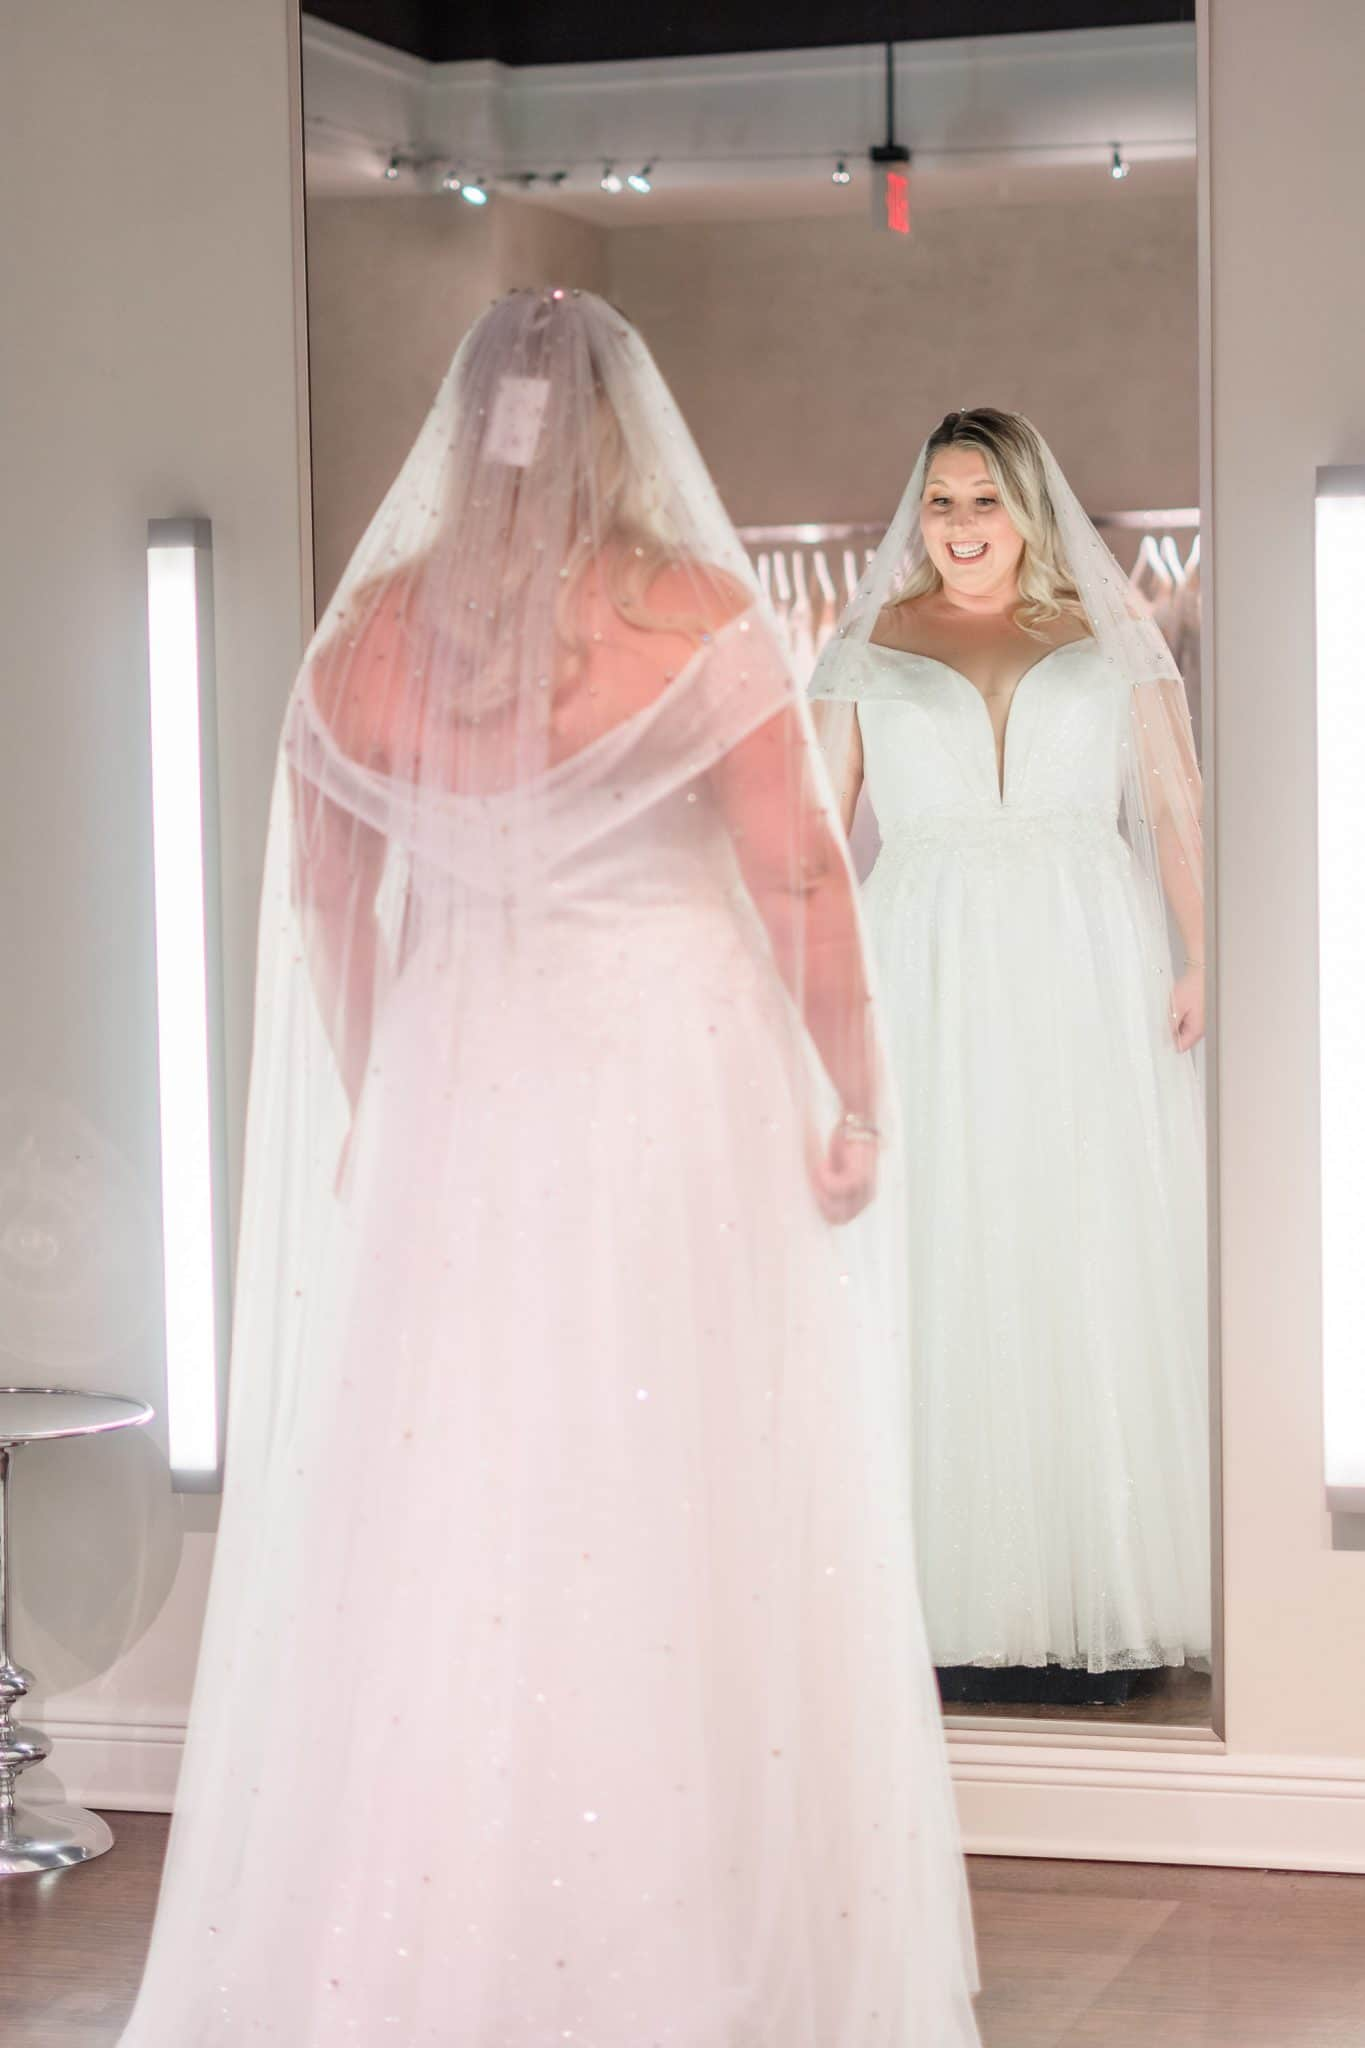 curvy wedding dress shopping in Orlando Florida